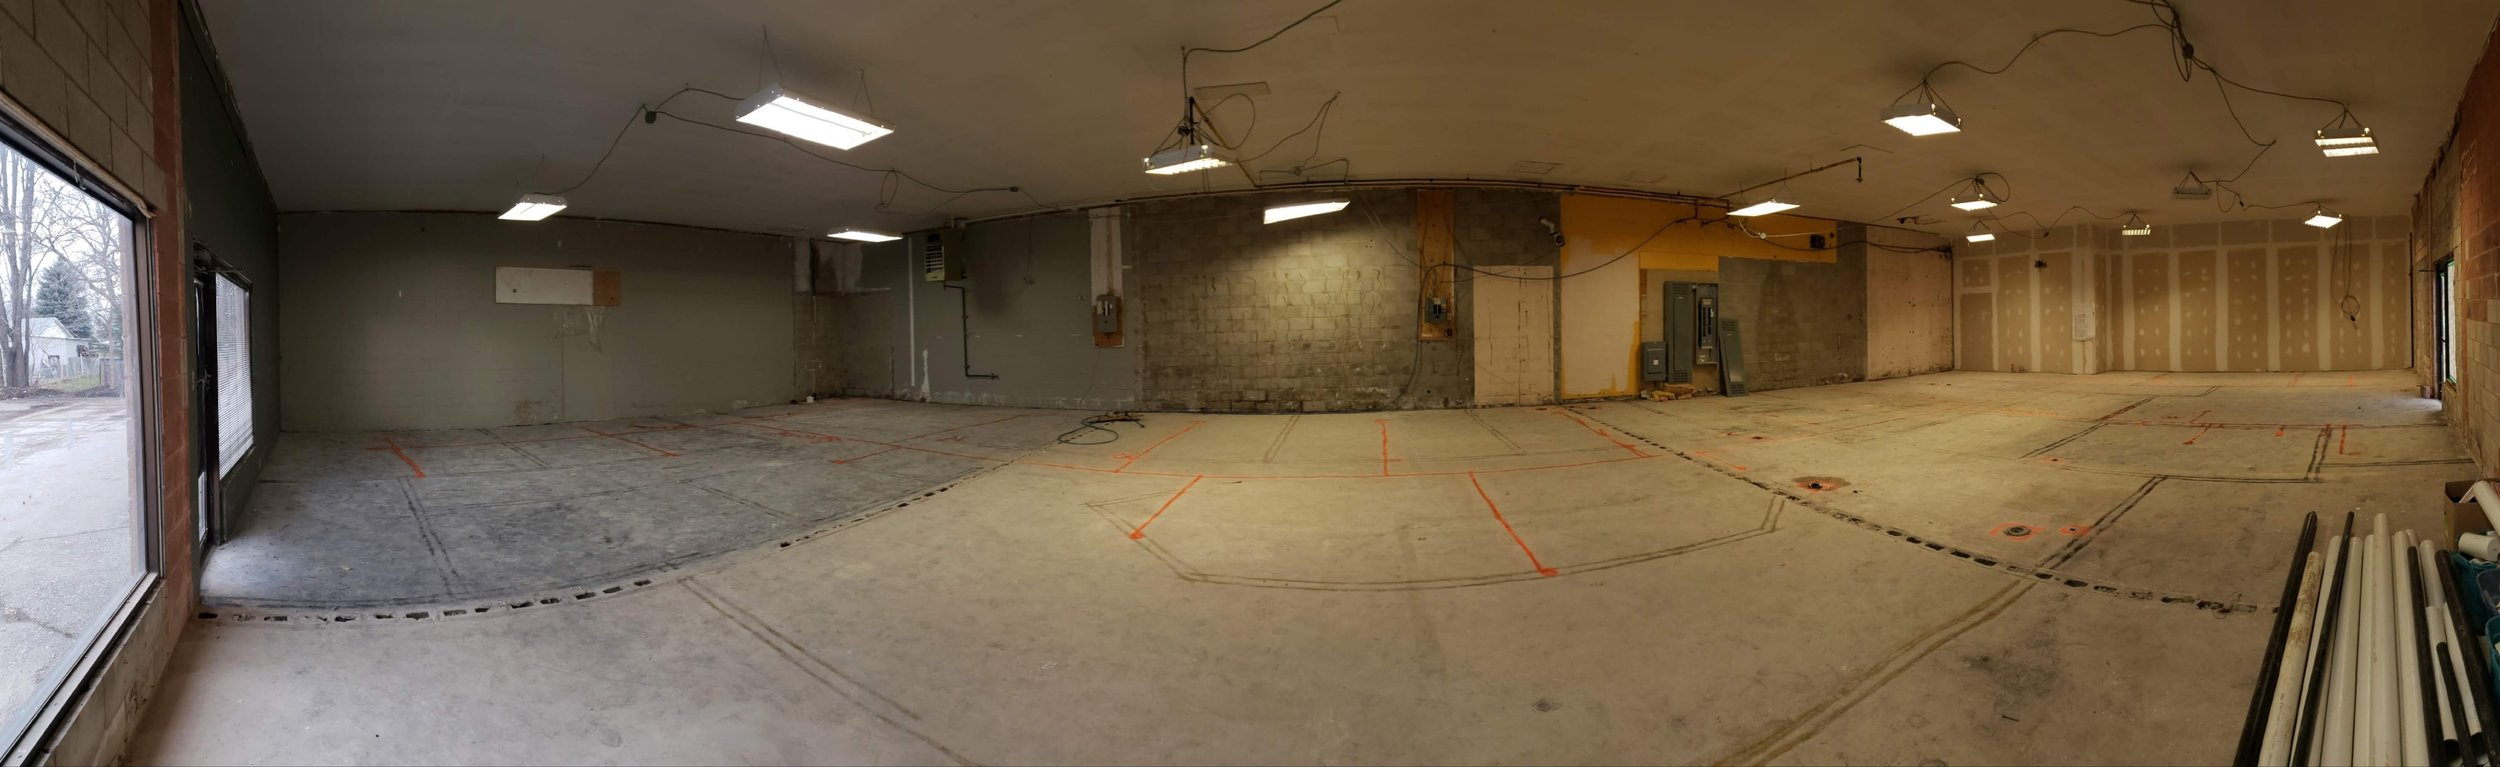 A clean slate ready to build!